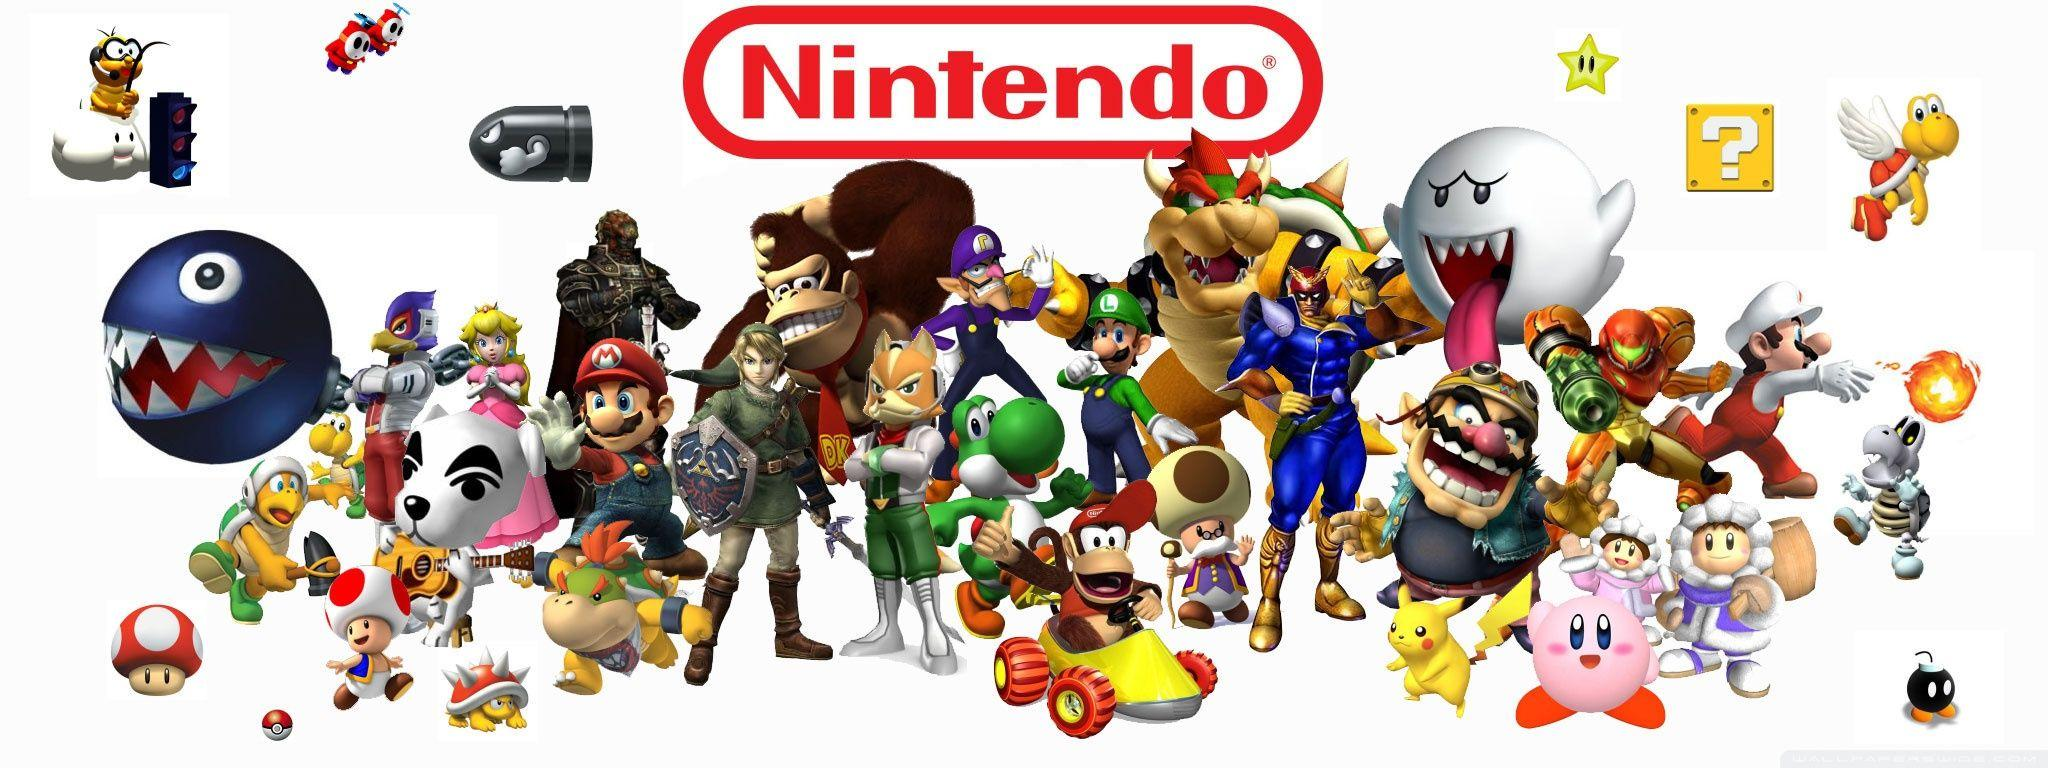 Image - Nintendo-wallpaper-2048x768.jpg - The Nintendo Wiki - Wii ...